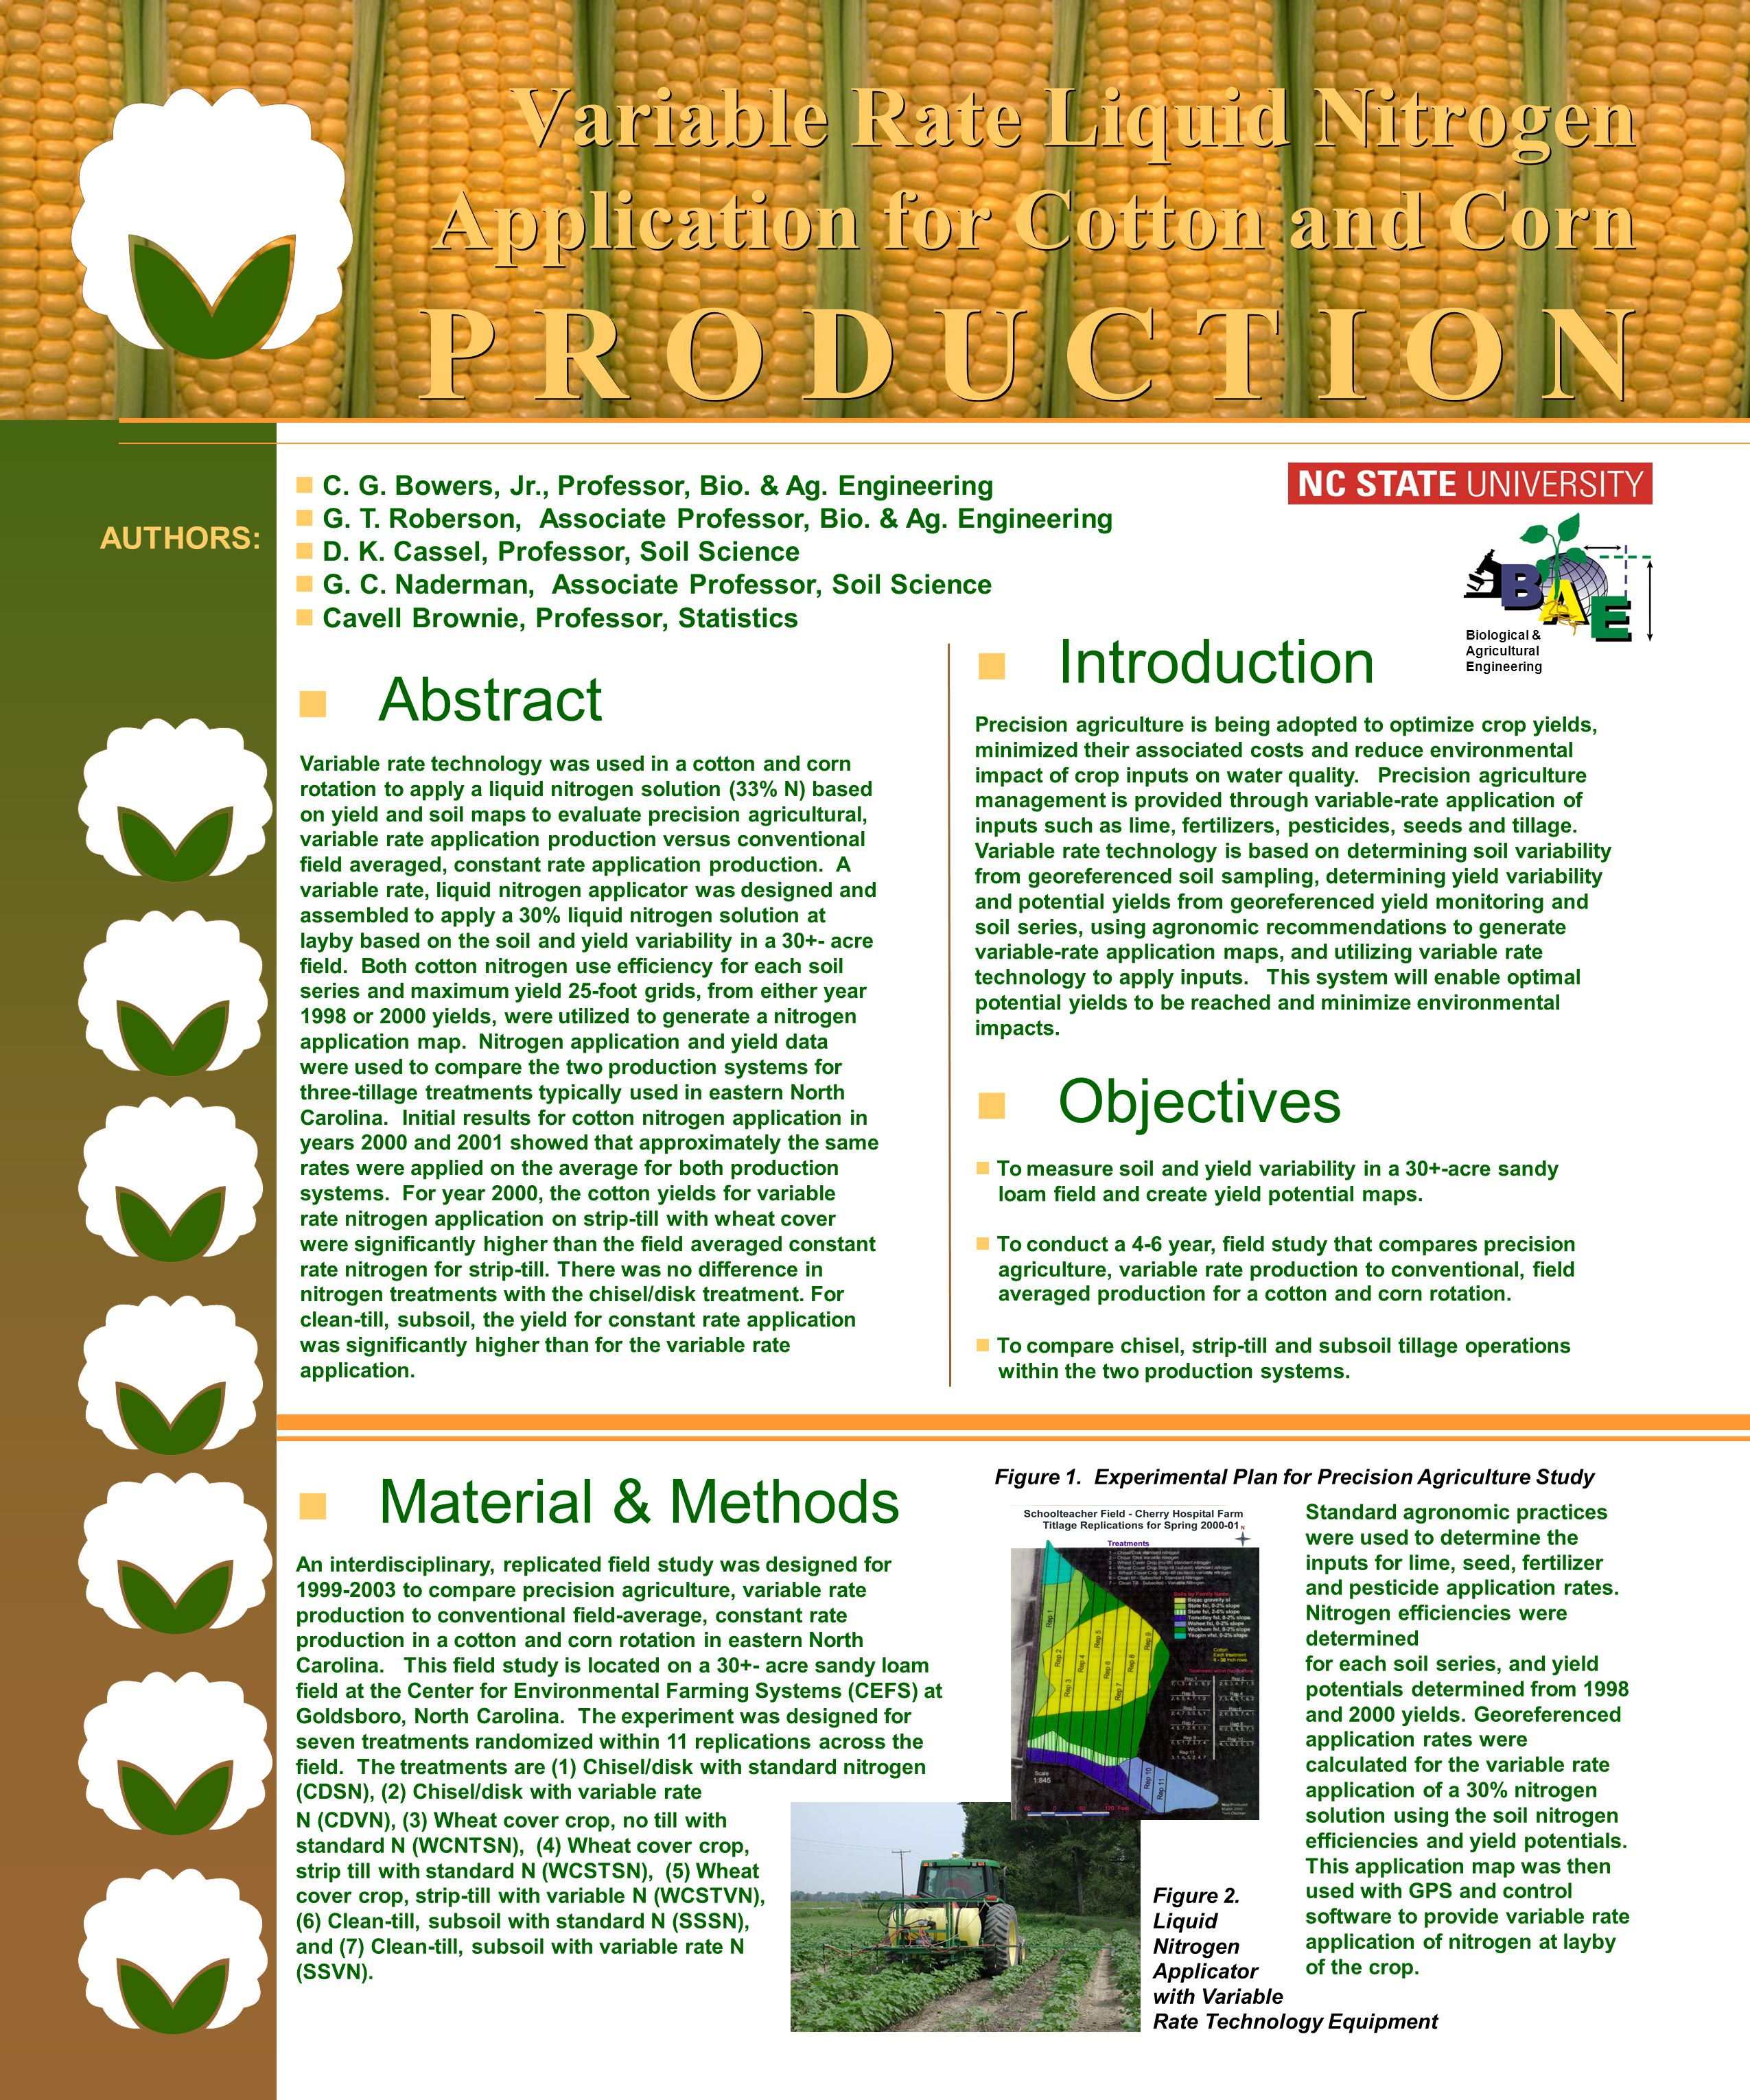 Variable Rate Liquid Nitrogen Application for Cotton and Corn P R O D U C T I O N C.